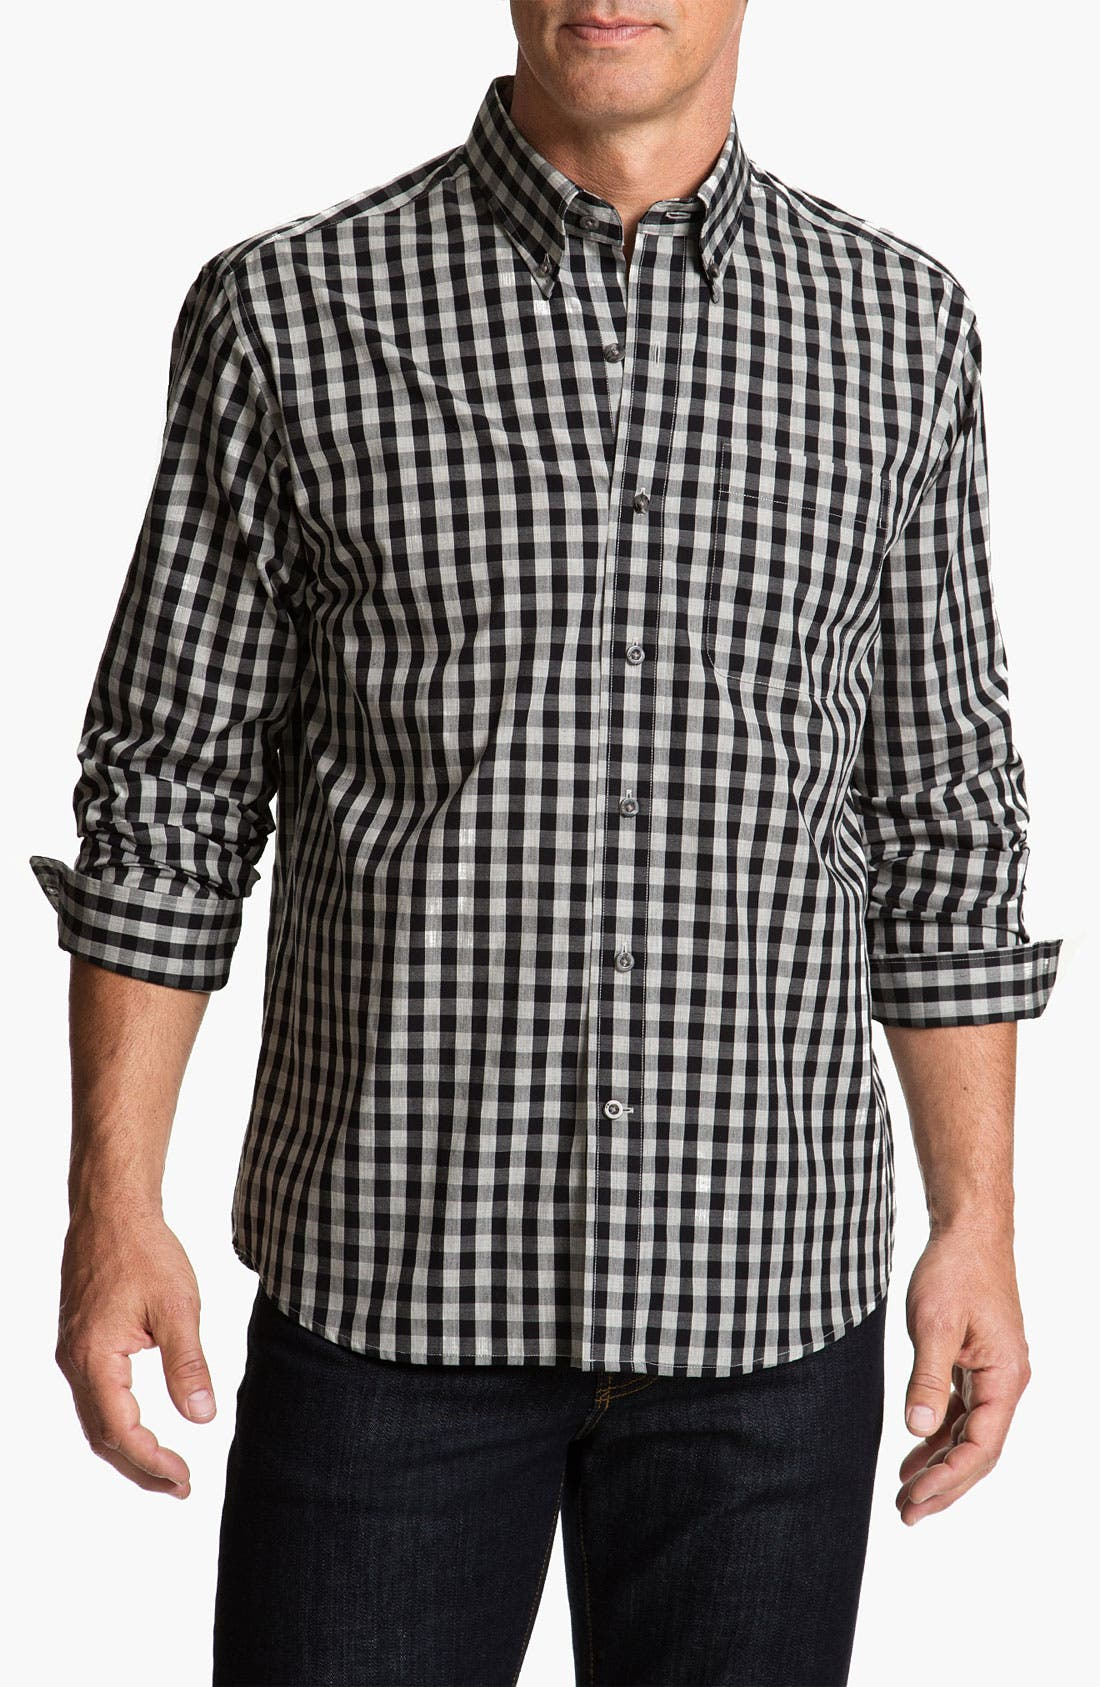 Alternate Image 1 Selected - Cutter & Buck 'Keene' Check Sport Shirt